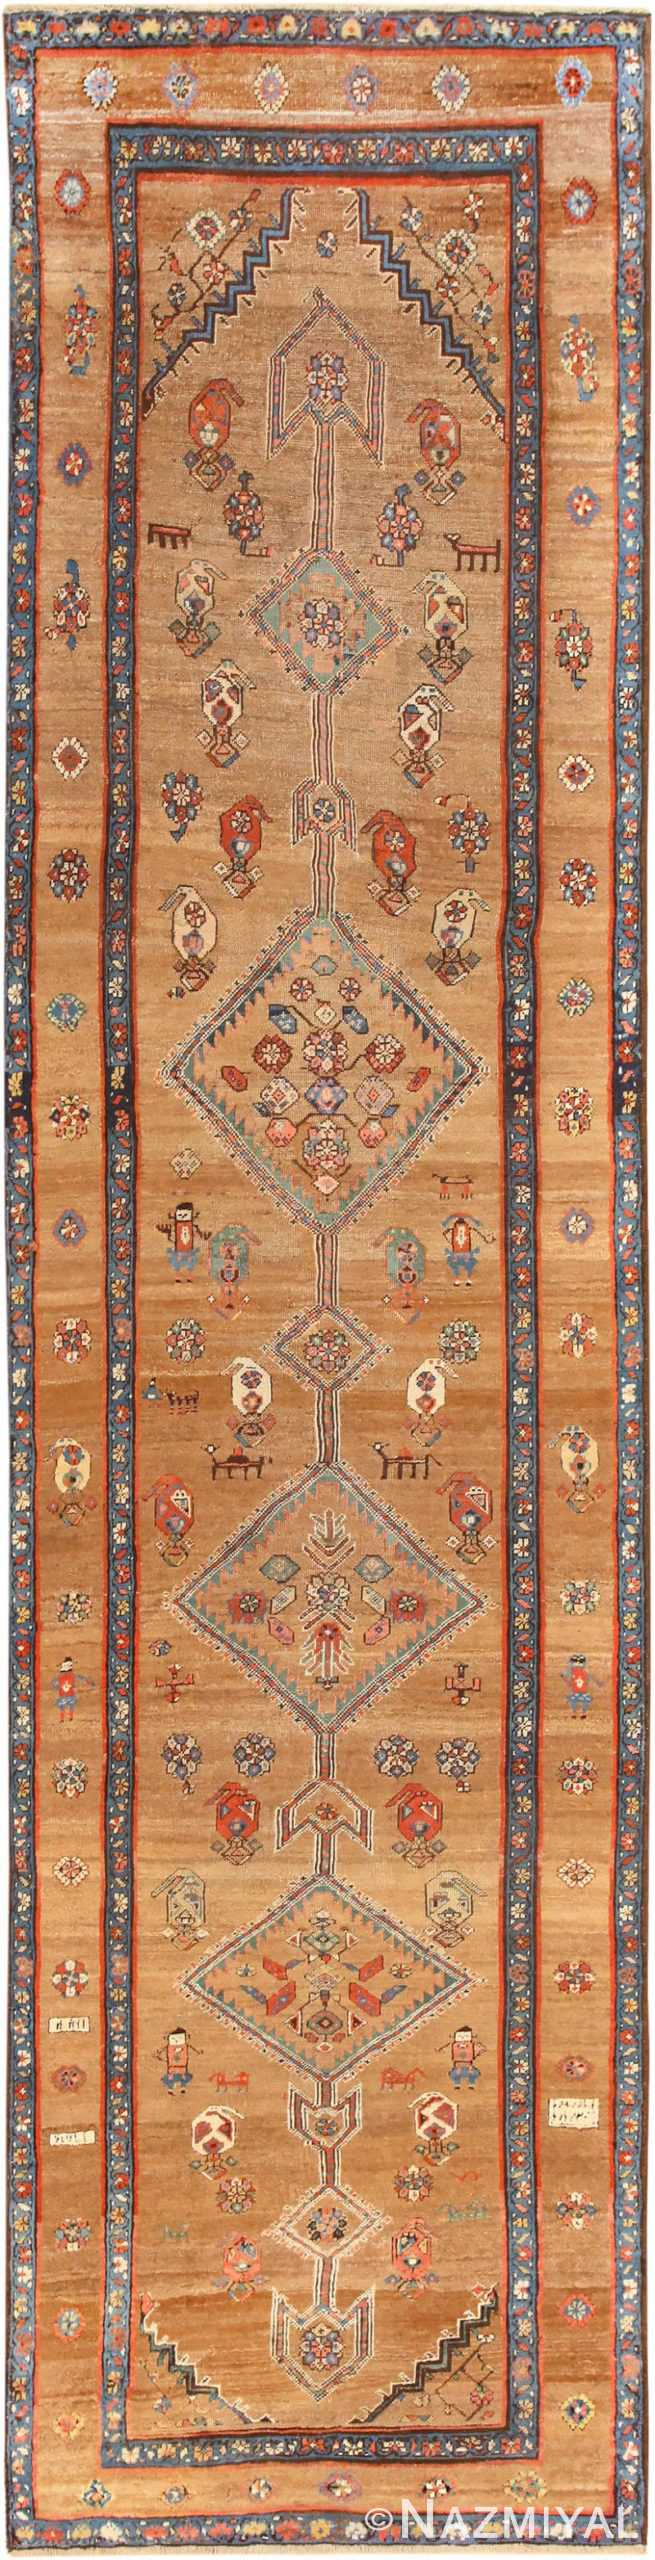 Tribal Antique Persian Serab Runner Rug 48807 Nazmiyal